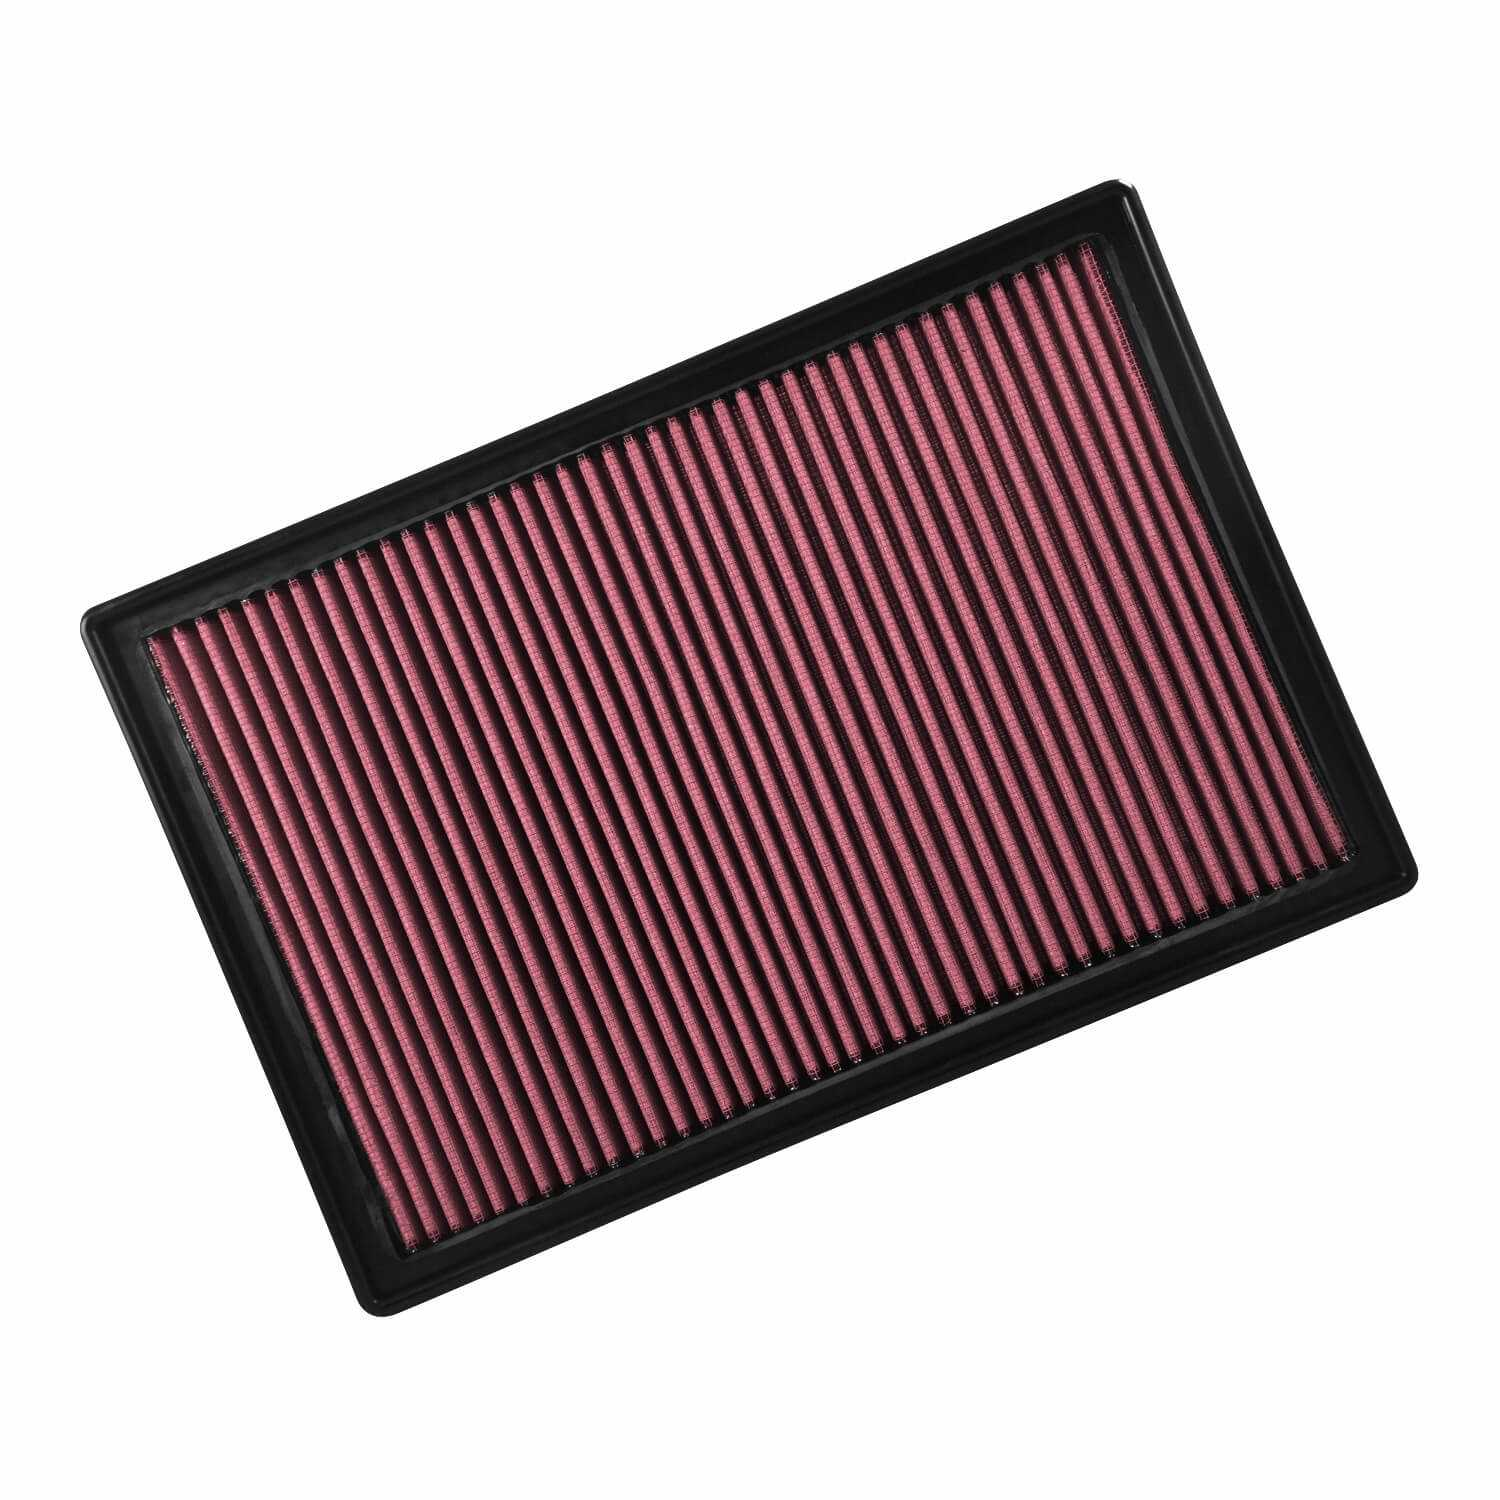 615023 Flowmaster Delta Force®Cold Air Intake Filter